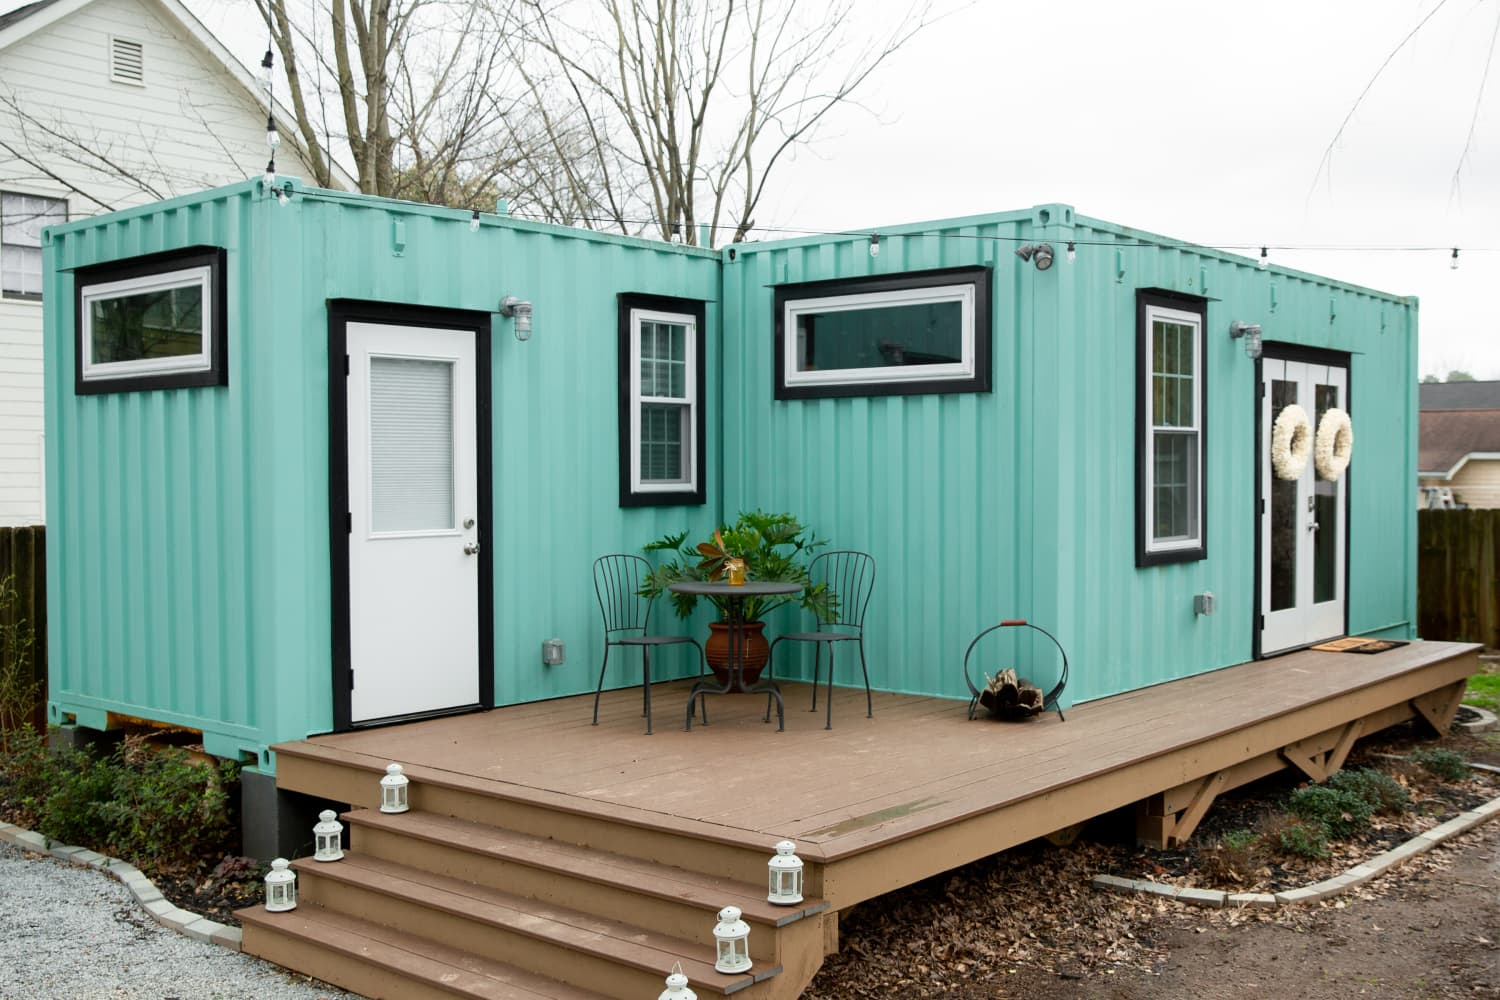 25 of the Best Tiny Houses, RVs, Boats, and Other Alternative Home Ideas from Real-Life Residents